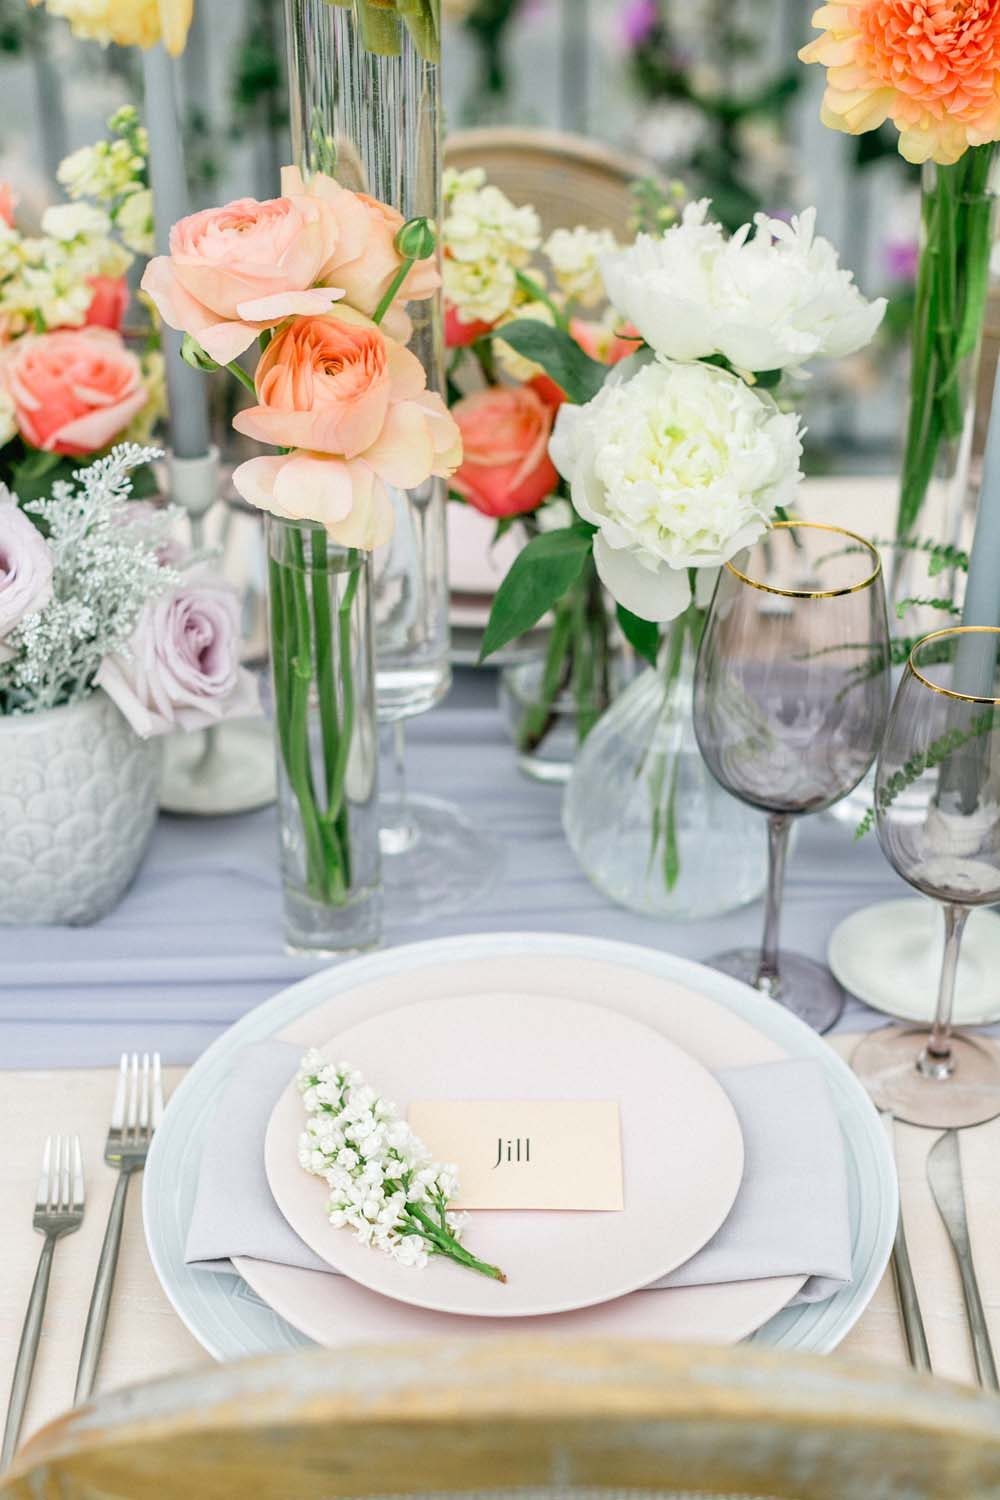 All The Beautiful Details You Need For A Modern, Floral-Filled Intimate Wedding